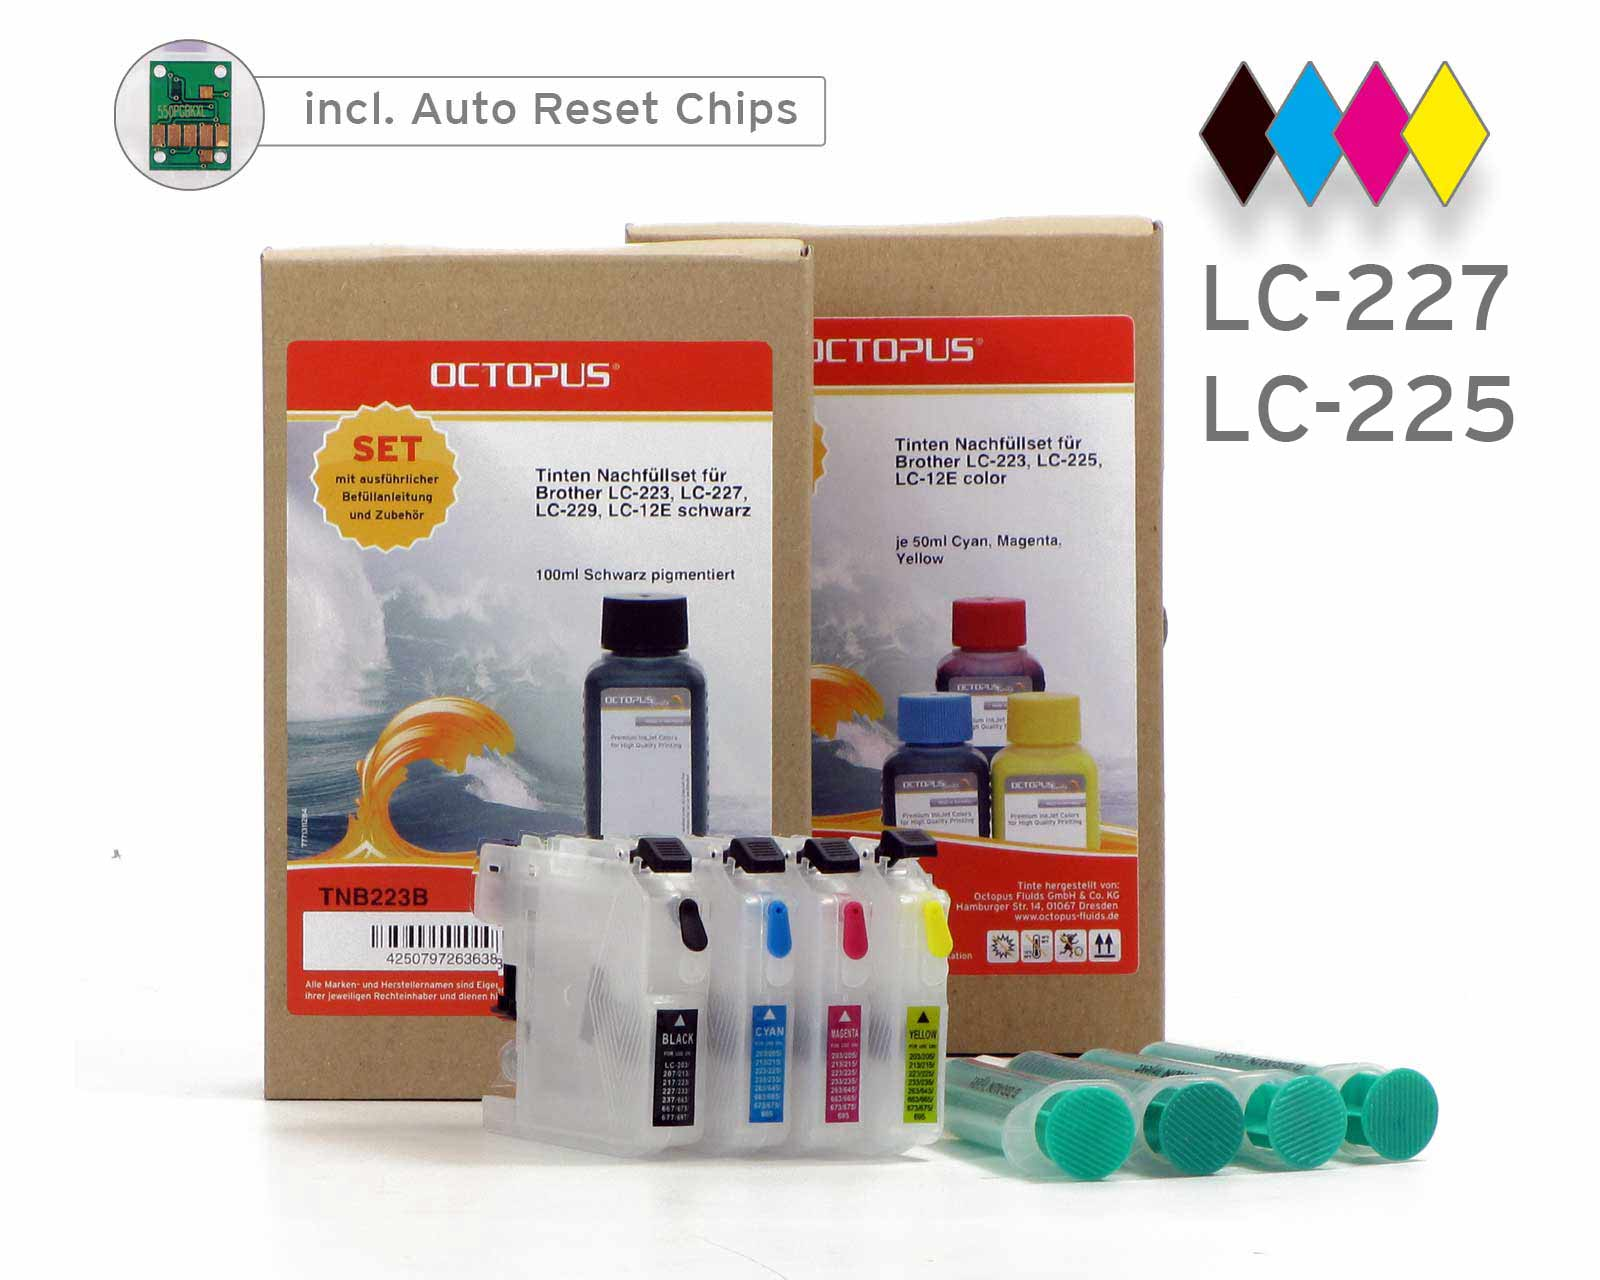 Kit di ricarica con cartucce Fill In per Brother LC-227, LC-225 e inchiostri